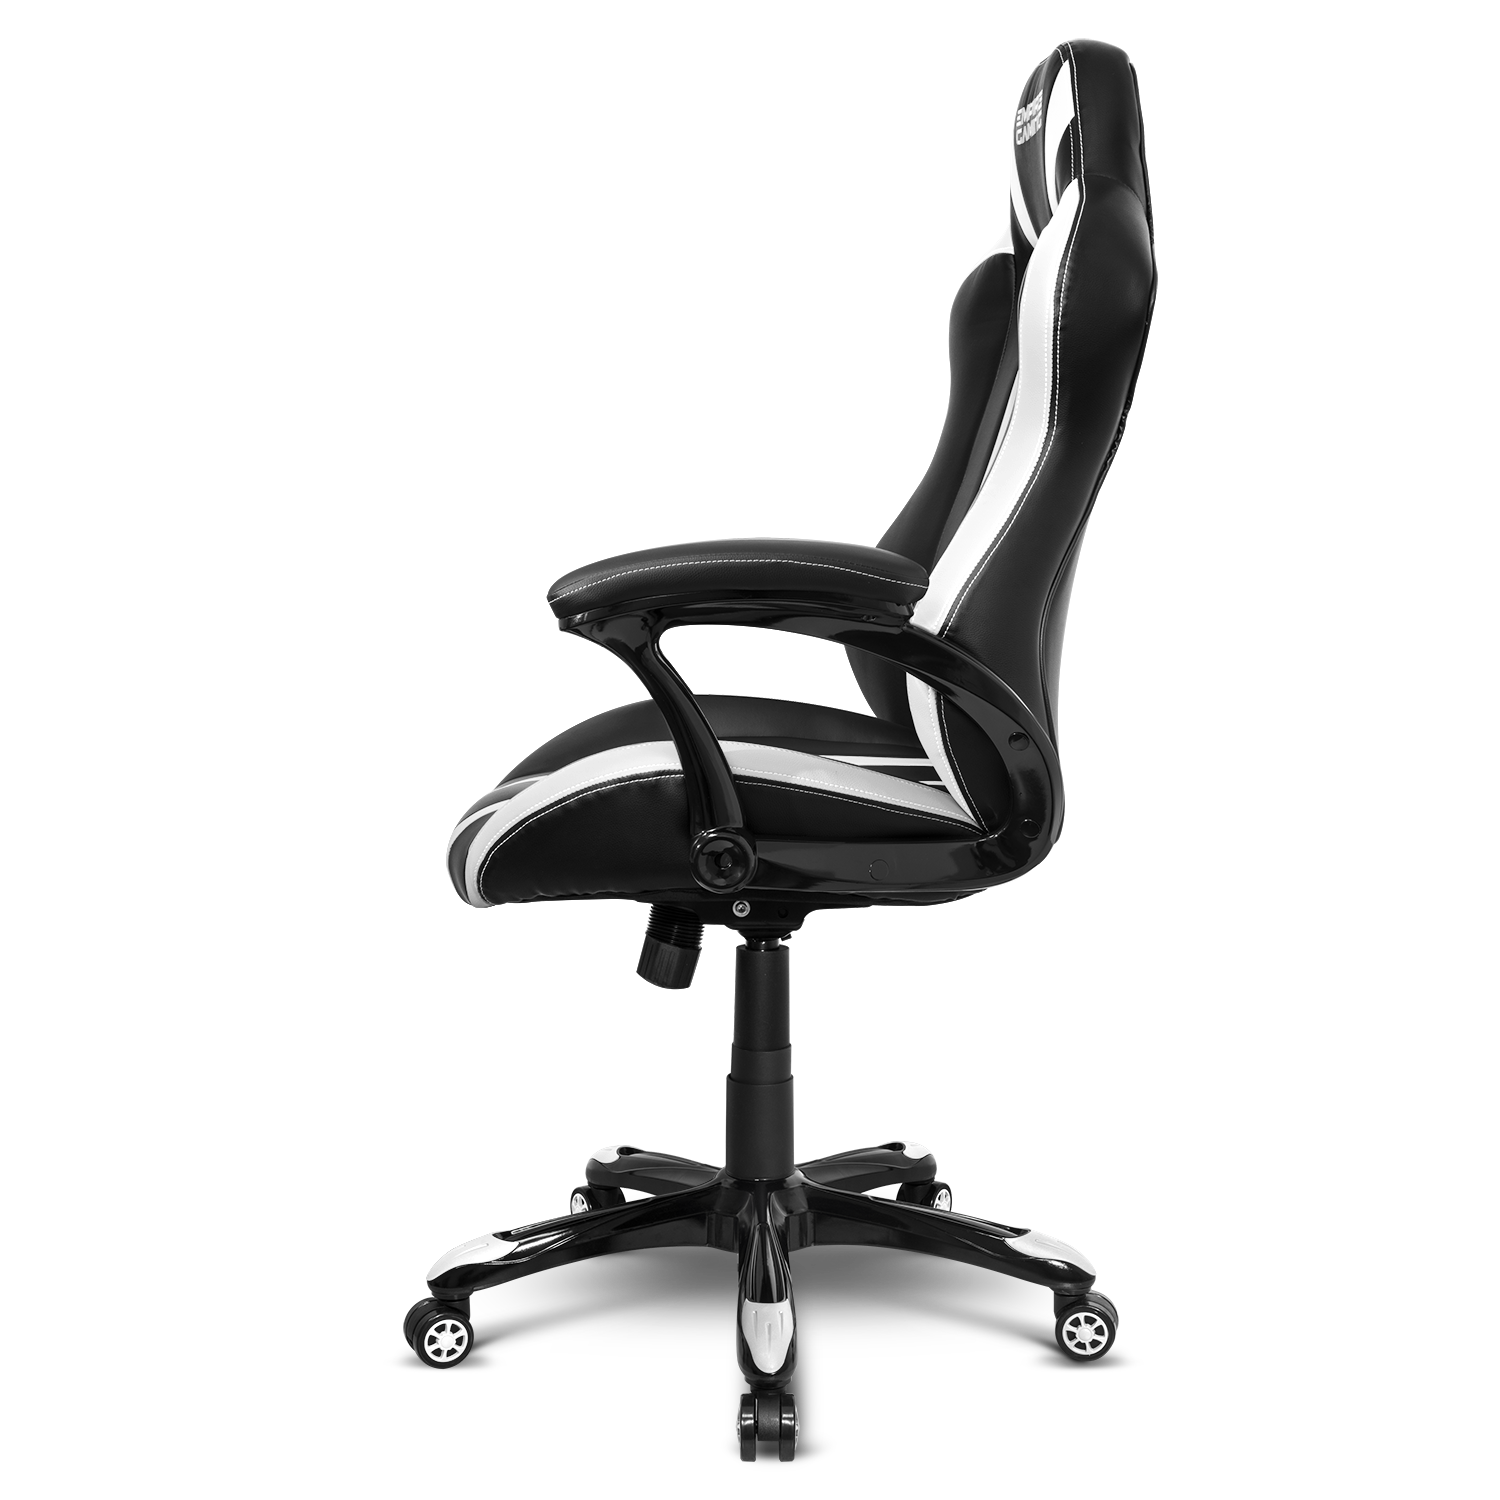 Empire Of Gaming - Racing 600 Blanc -   FAUTEUIL GAMER AVEC ACCOUDOIRS ULTRA CONFORTABLES ET MOELLEUX